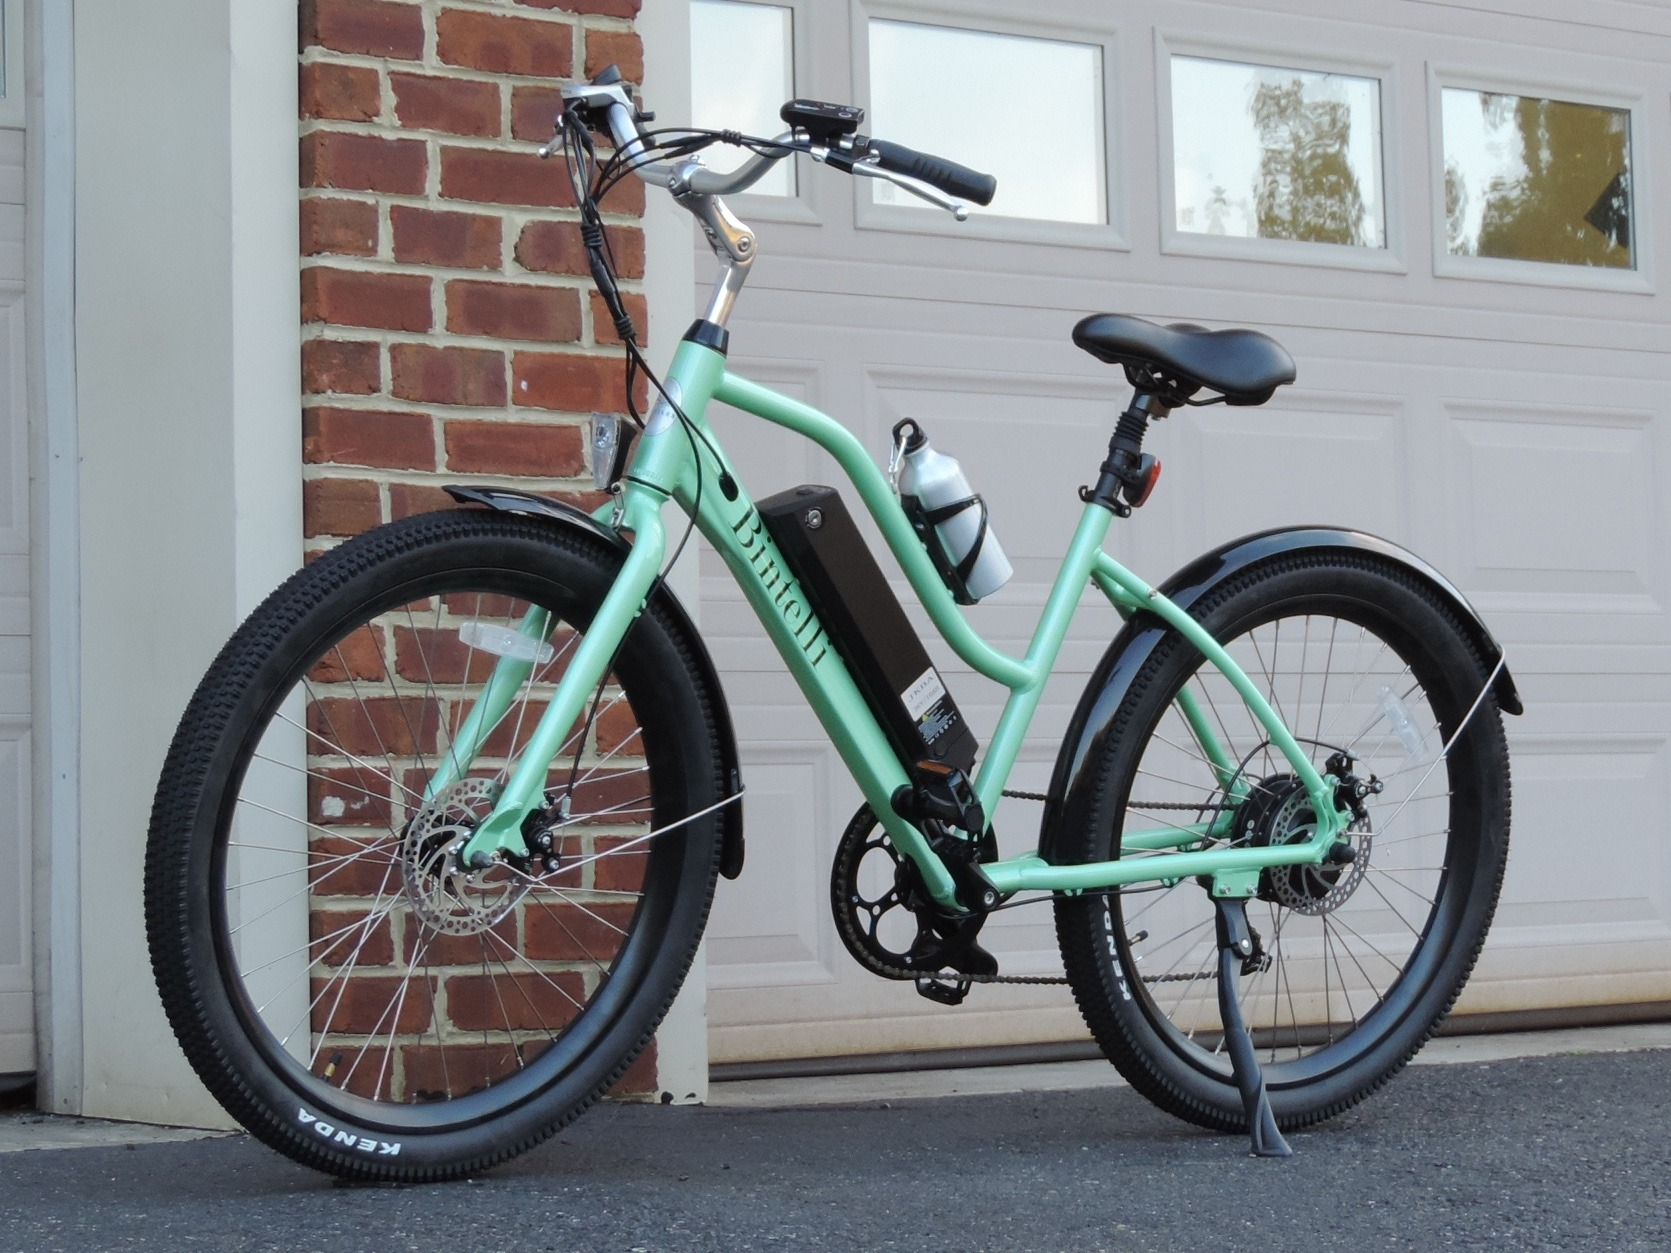 New-2018-Bintelli-B1-Electric-Beach-Cruiser